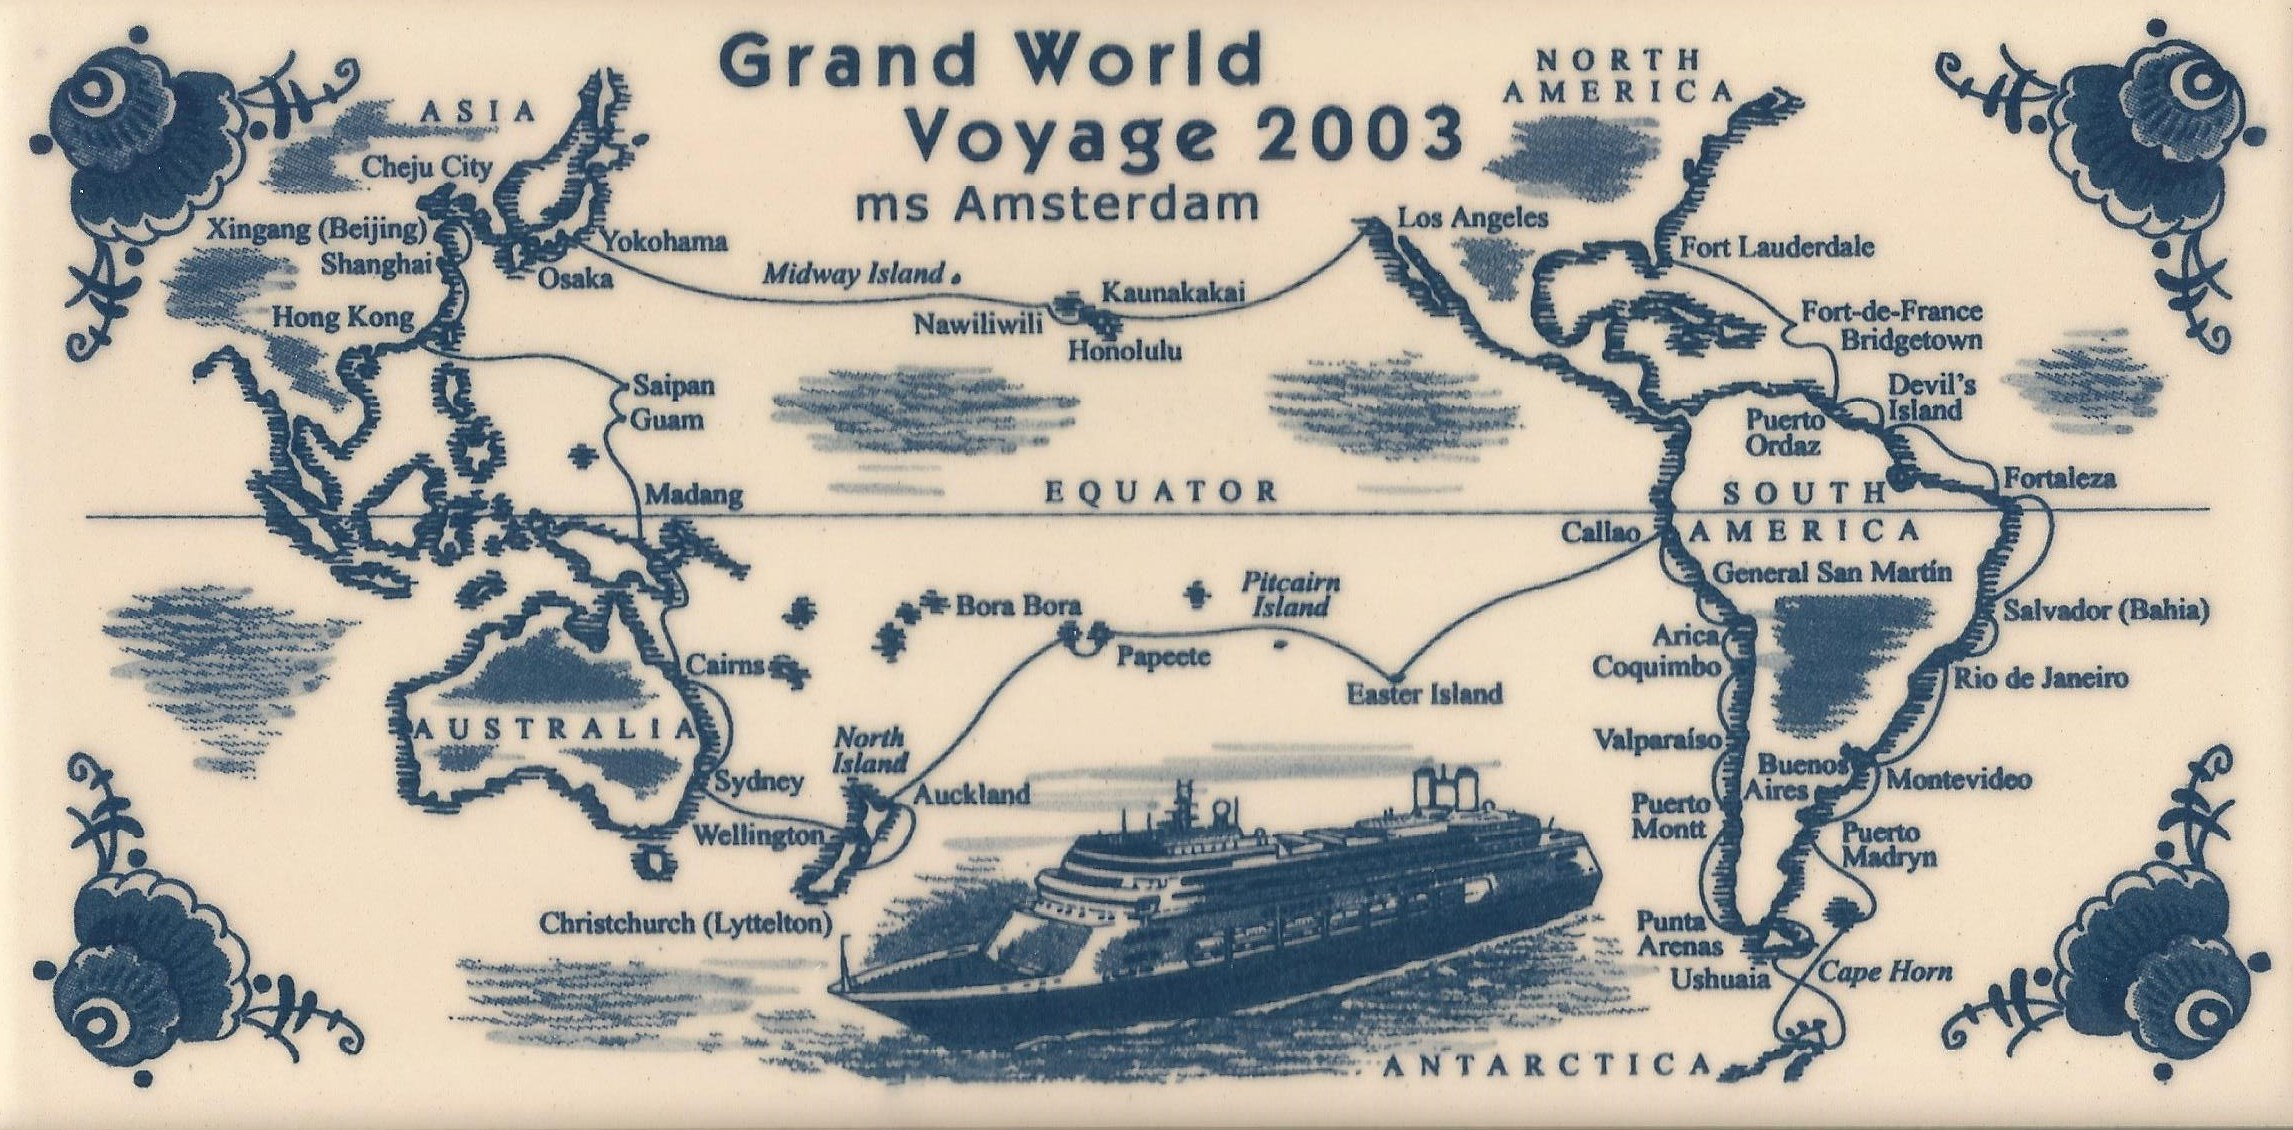 38 grand world voyage amsterdam 2003